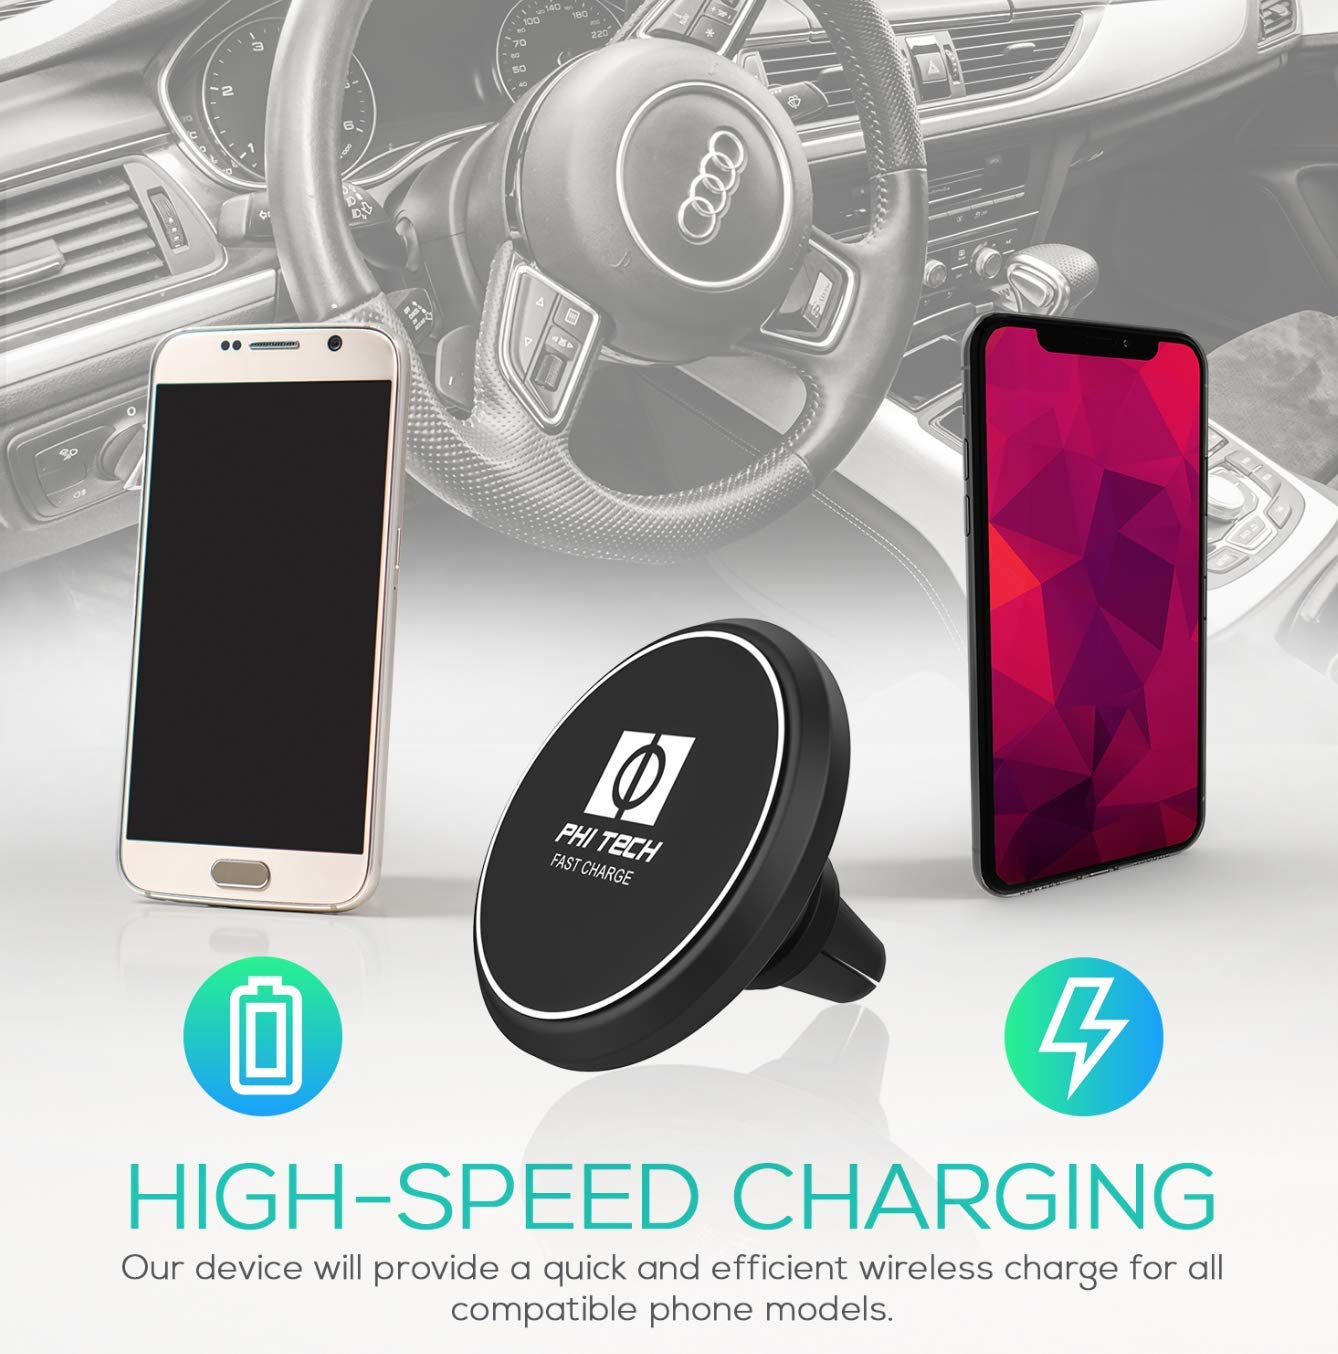 Fast Magnetic Wireless Car Charger Mount and Holder//Qi Enabled//Air-Vent Accessible for Iphone XS Max//XS//XR//X//8//8 Plus Samsung Galaxy S8//S7//S7 Edge//Note 8 Phi Tech 4351655144